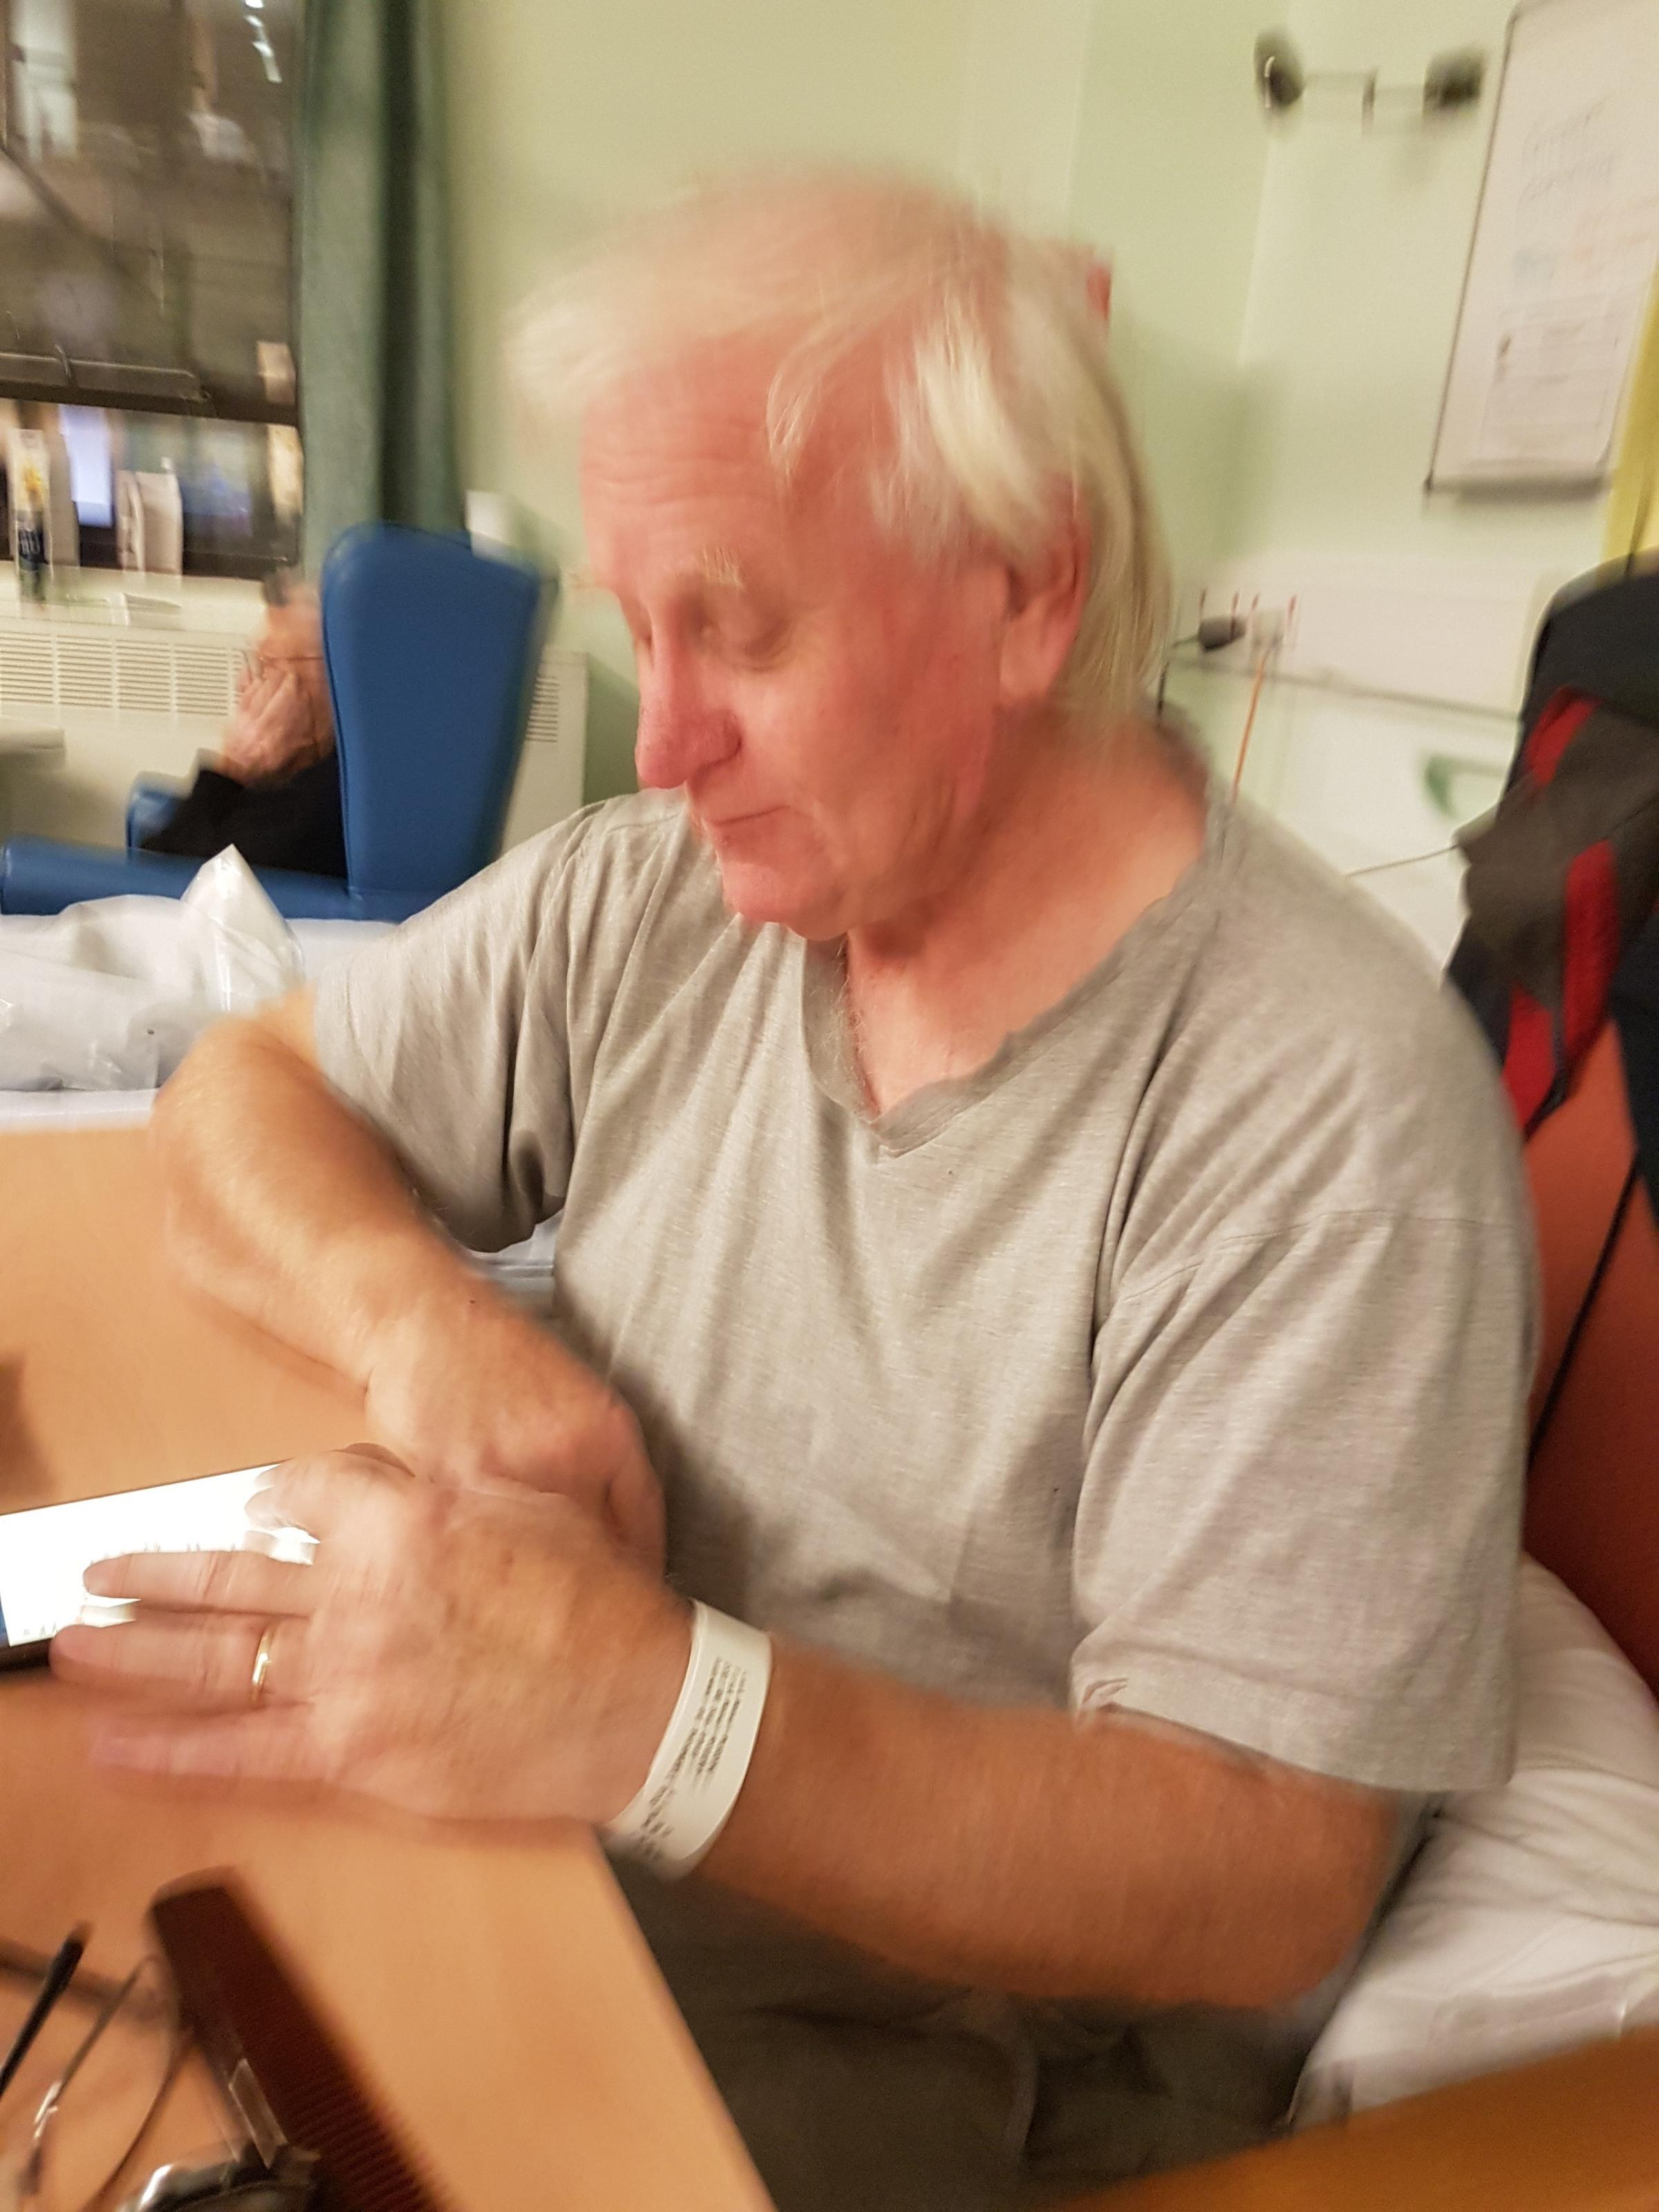 SHOCKED: Robert Murdin, 69, pictured here recovering in St Woolos Hospital after he suffered a stroke. Picture: Nicola Murdin